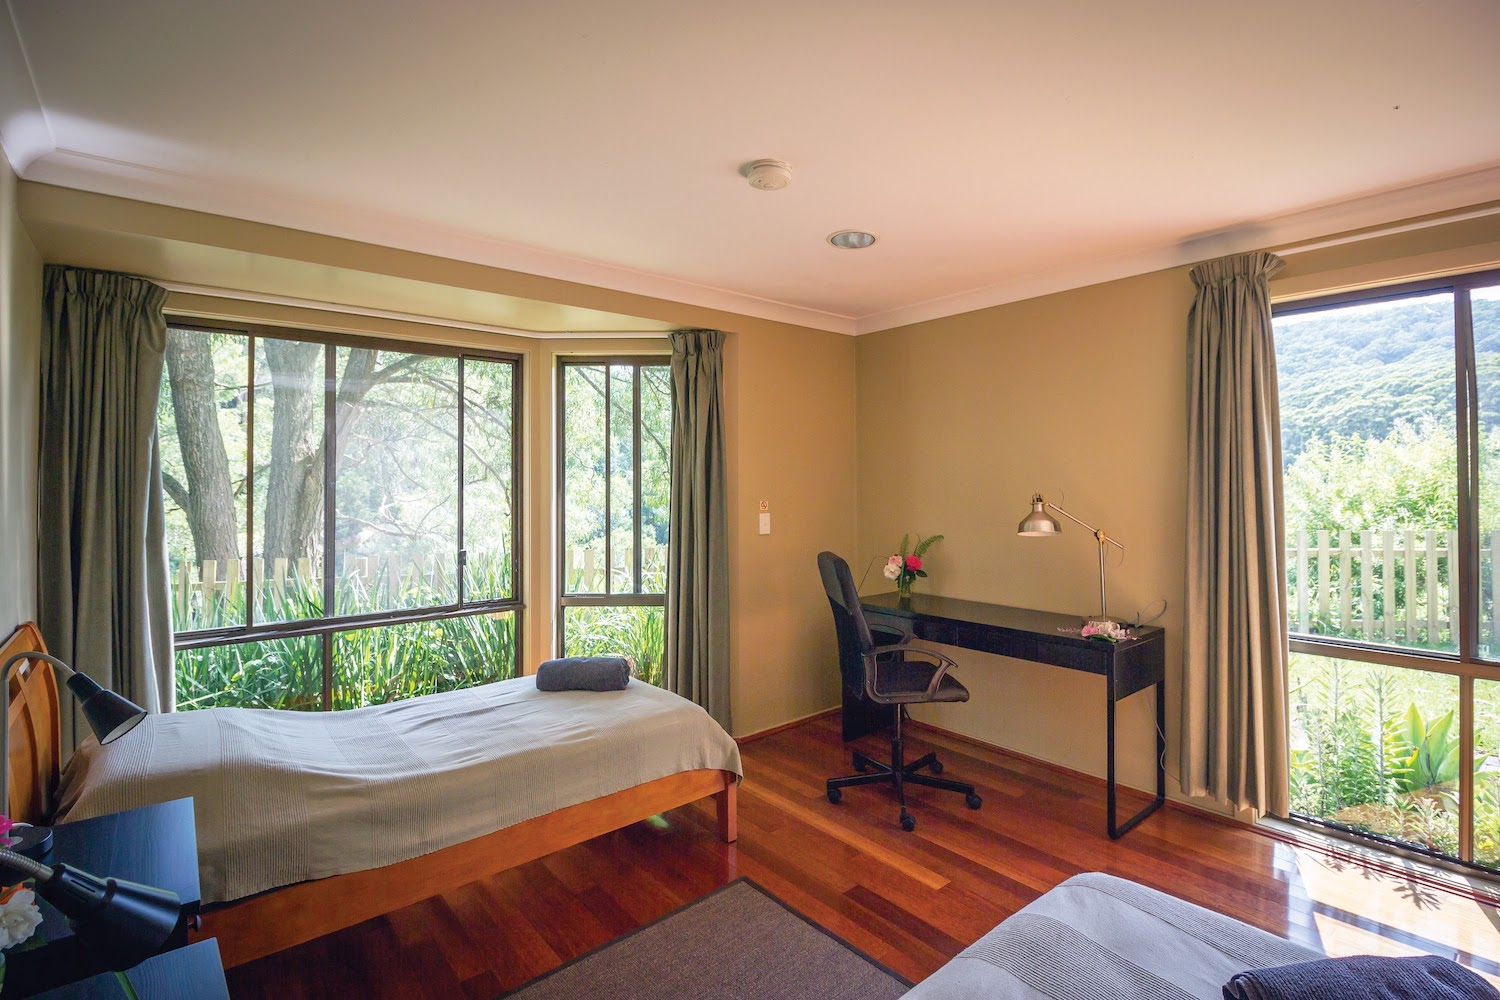 PACKAGE 1 - TWIN ROOM W/ ENSUITE Features: Private Bathroom, 2 x Single Beds, polished wooden floors, fans + heater, free high speed WiFi, free parking. Access to all yoga classes + 3 vegan meals daily + workshops.